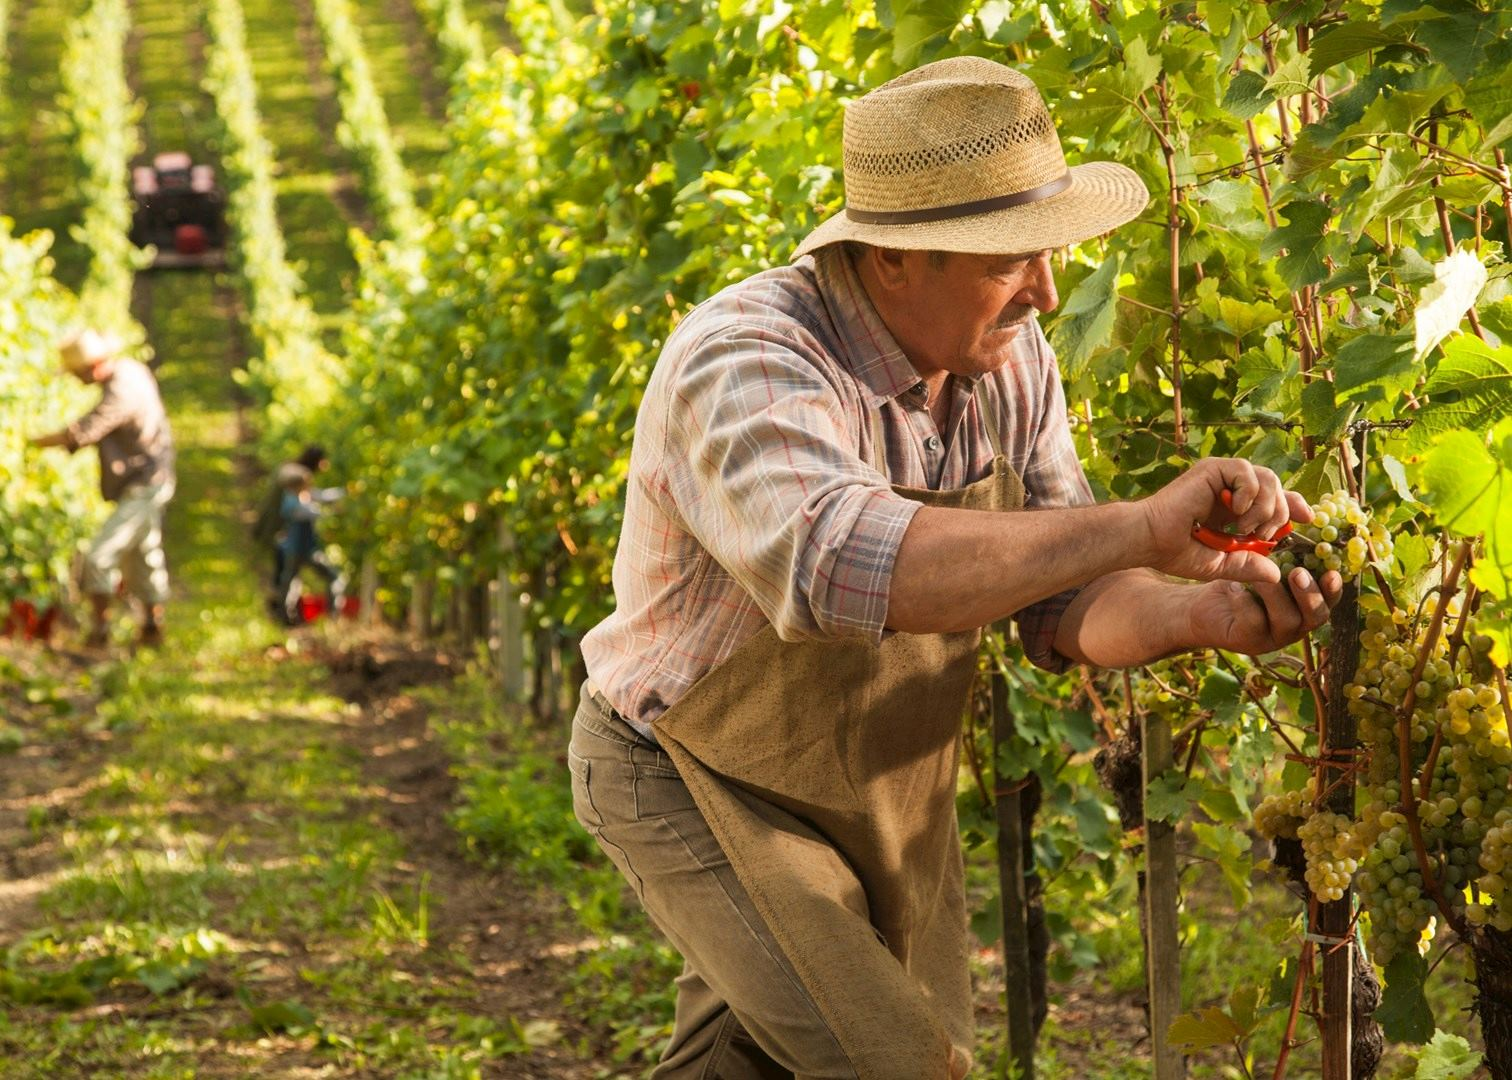 Tour the Wines of the Loire Valley